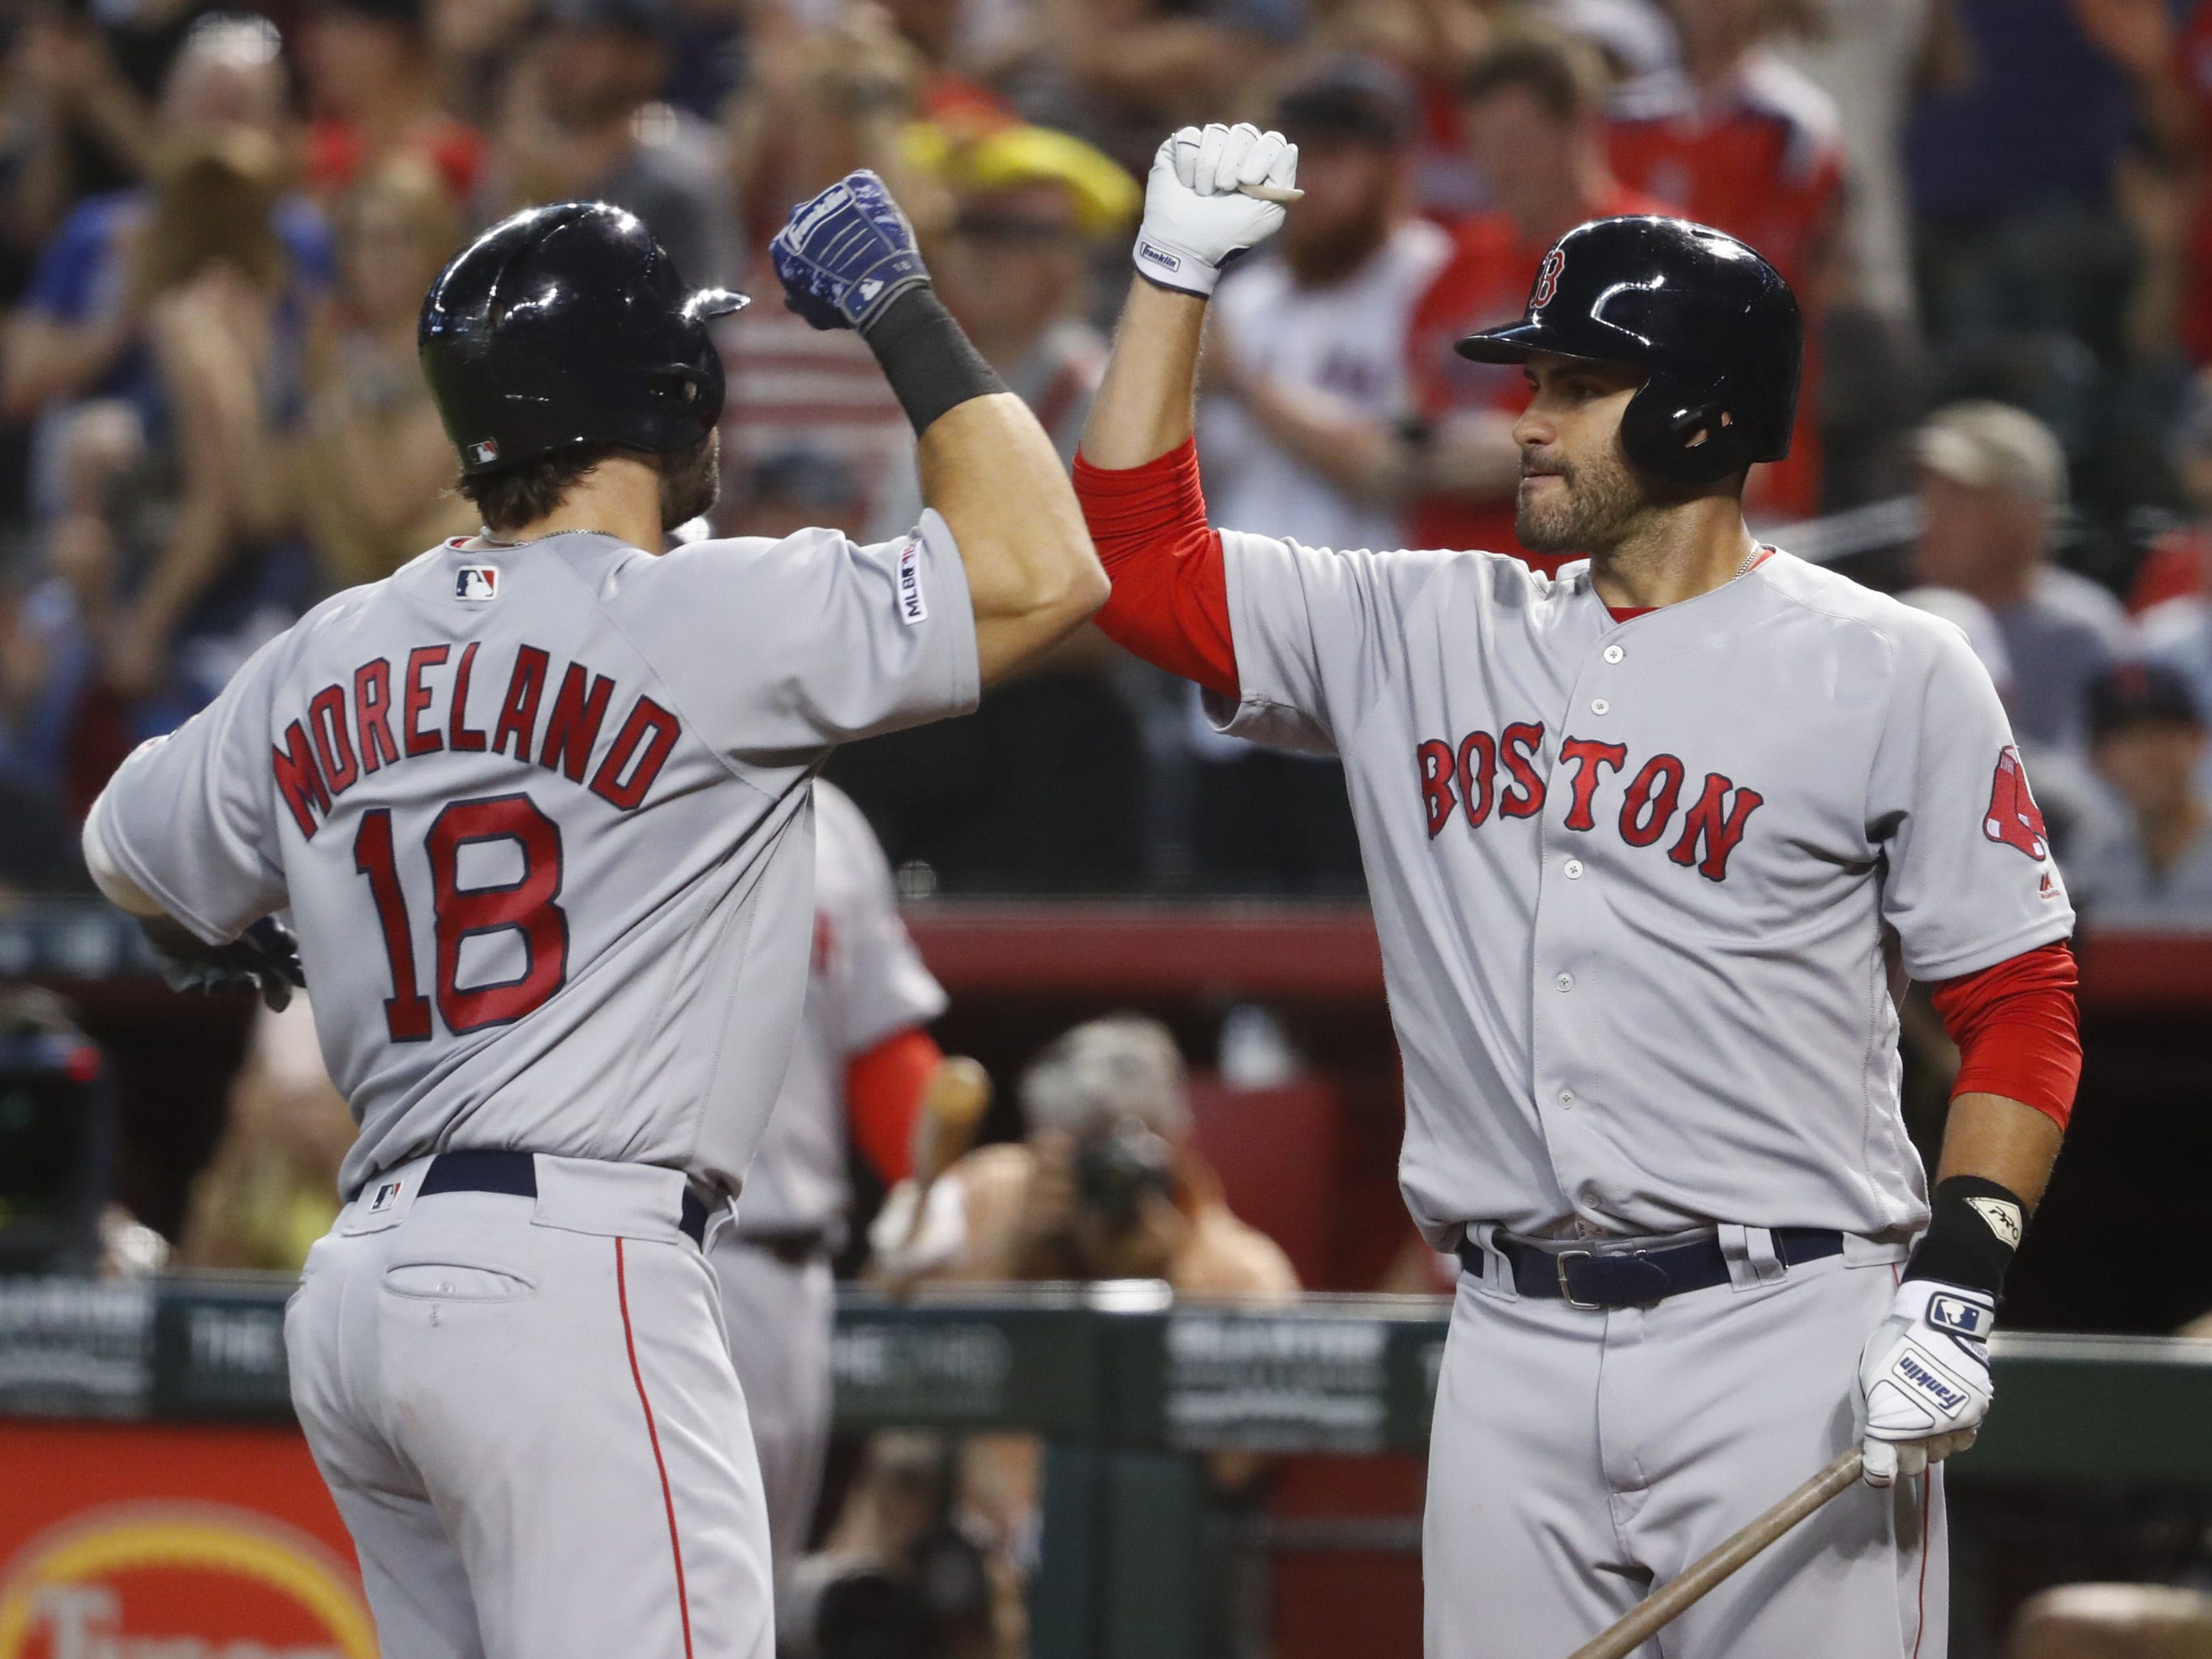 Red Sox Mitch Moreland (18) celebrates with JD Martinez (28) after Moreland hit a solo home run during the seventh inning at Chase Field in Phoenix, Ariz. on April 7, 2019.